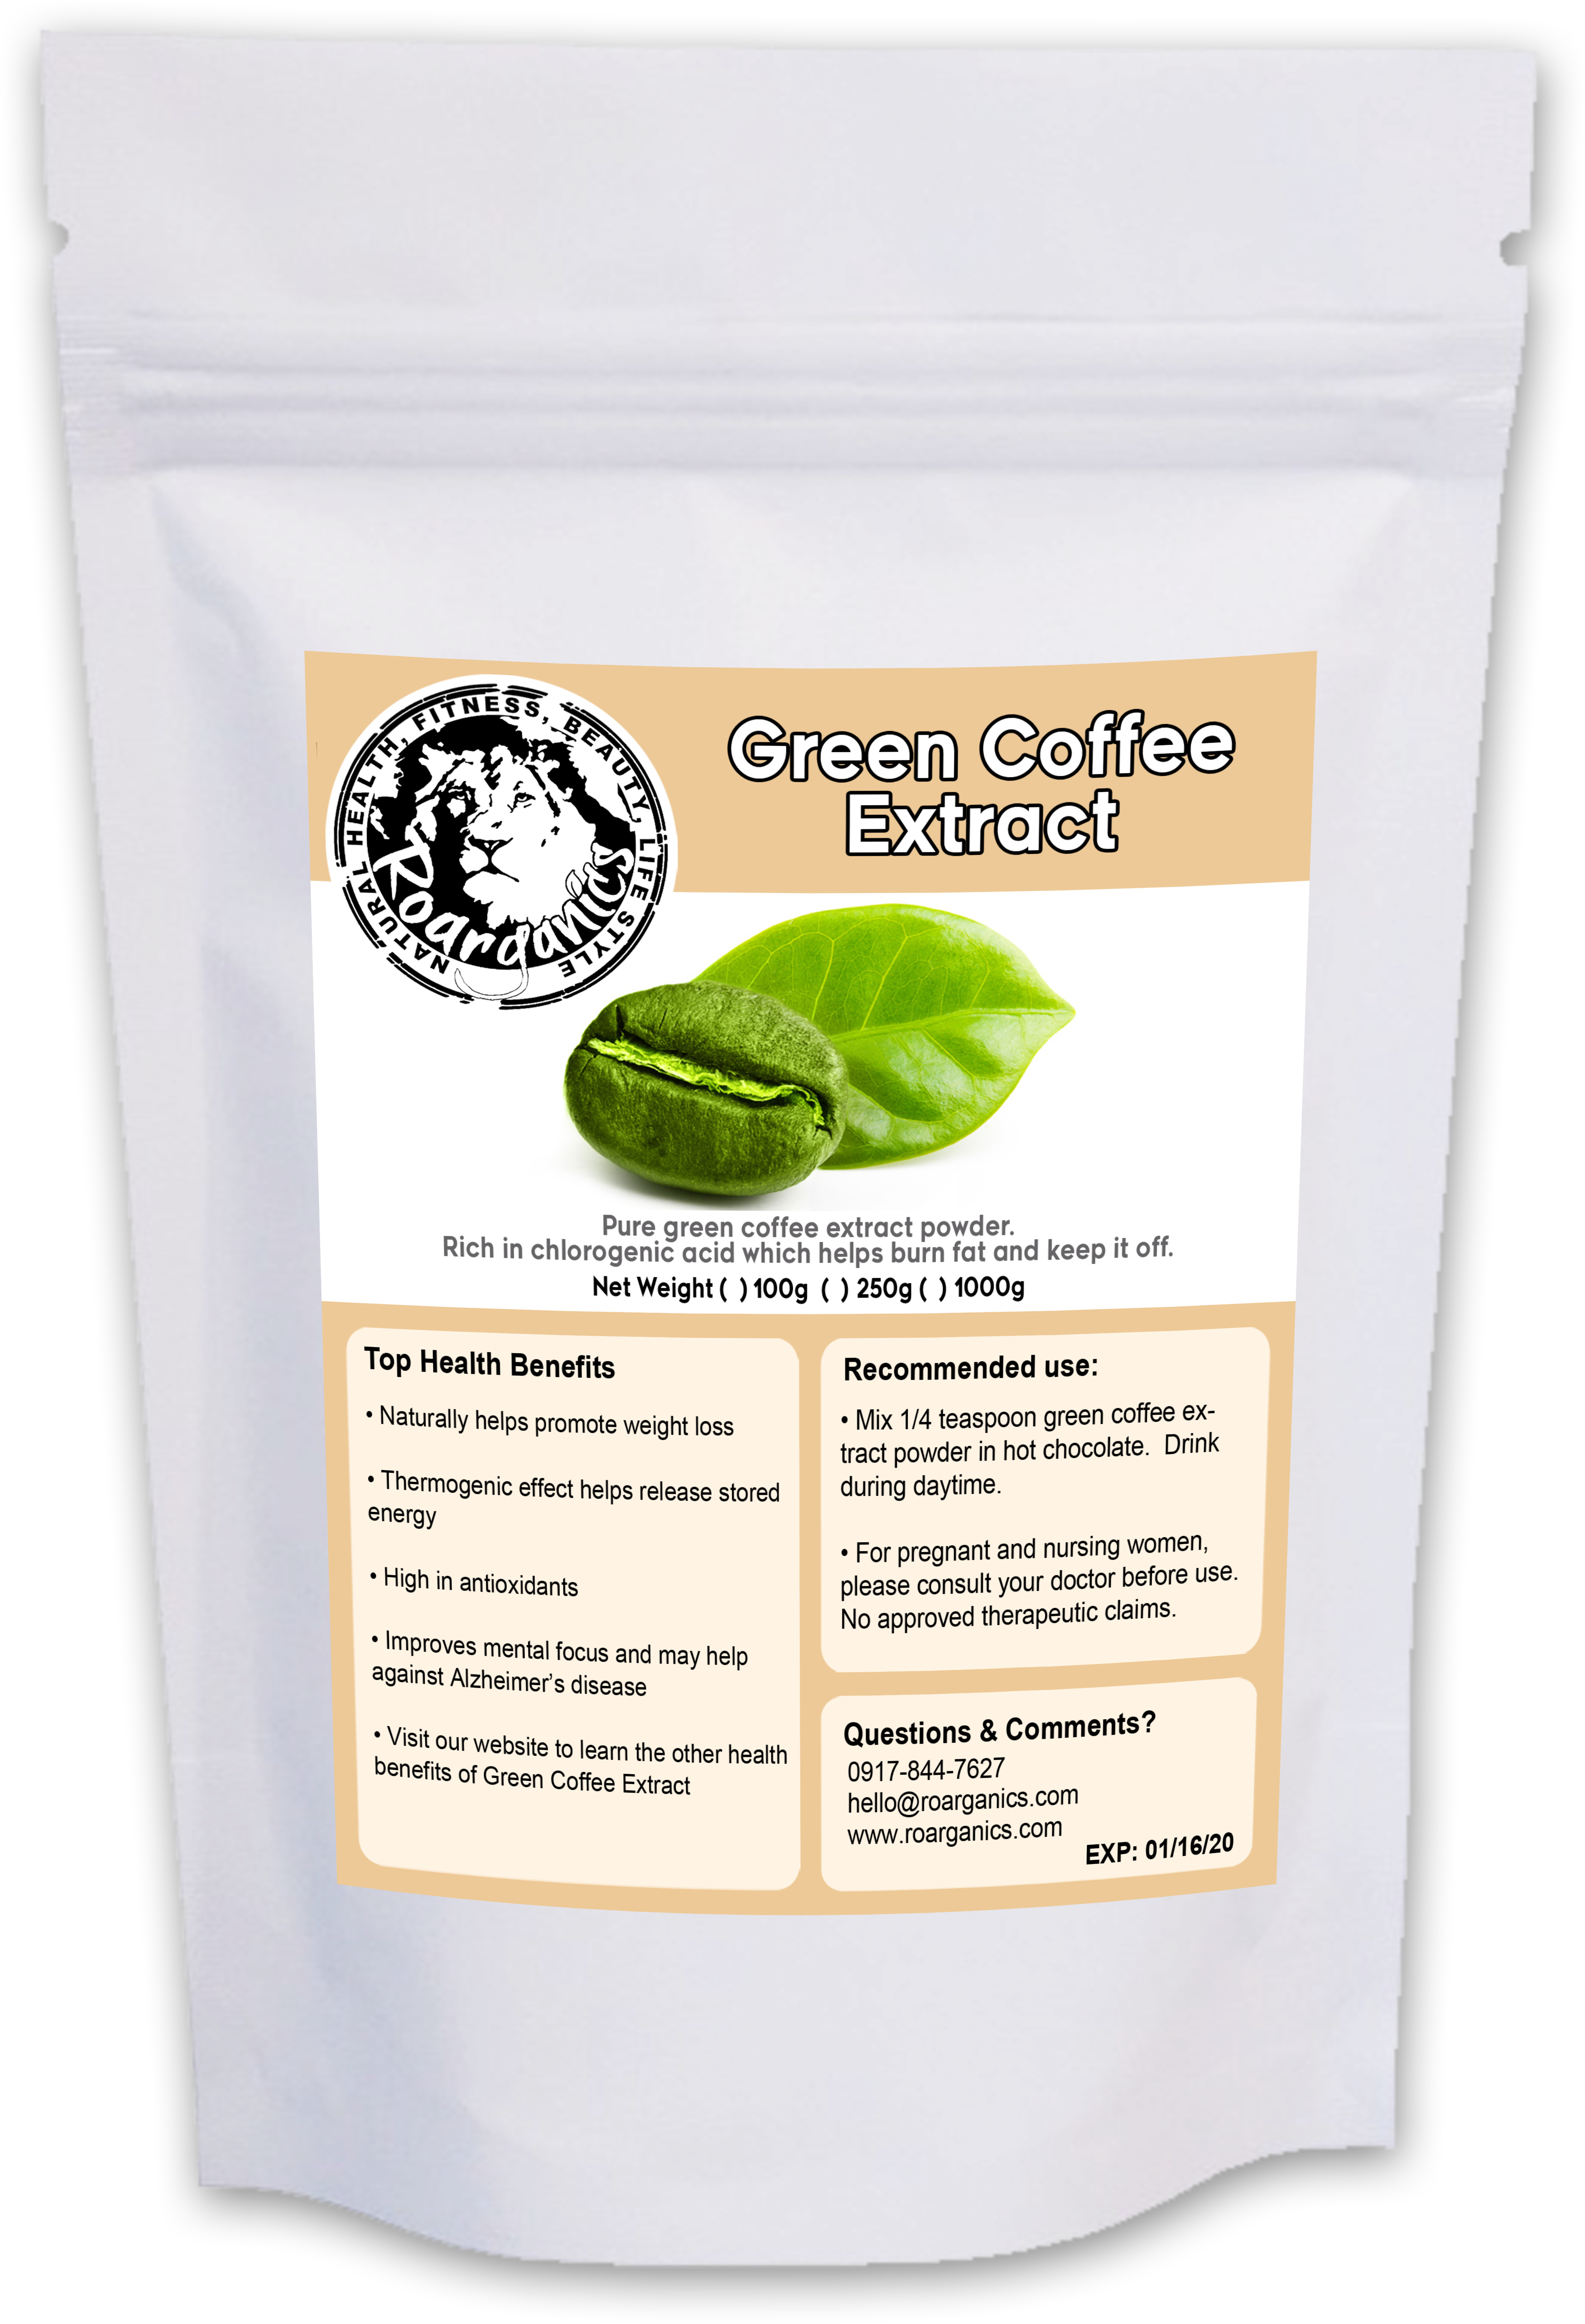 Download Green Coffee Bean Extract Powder Green Coffee Png Image